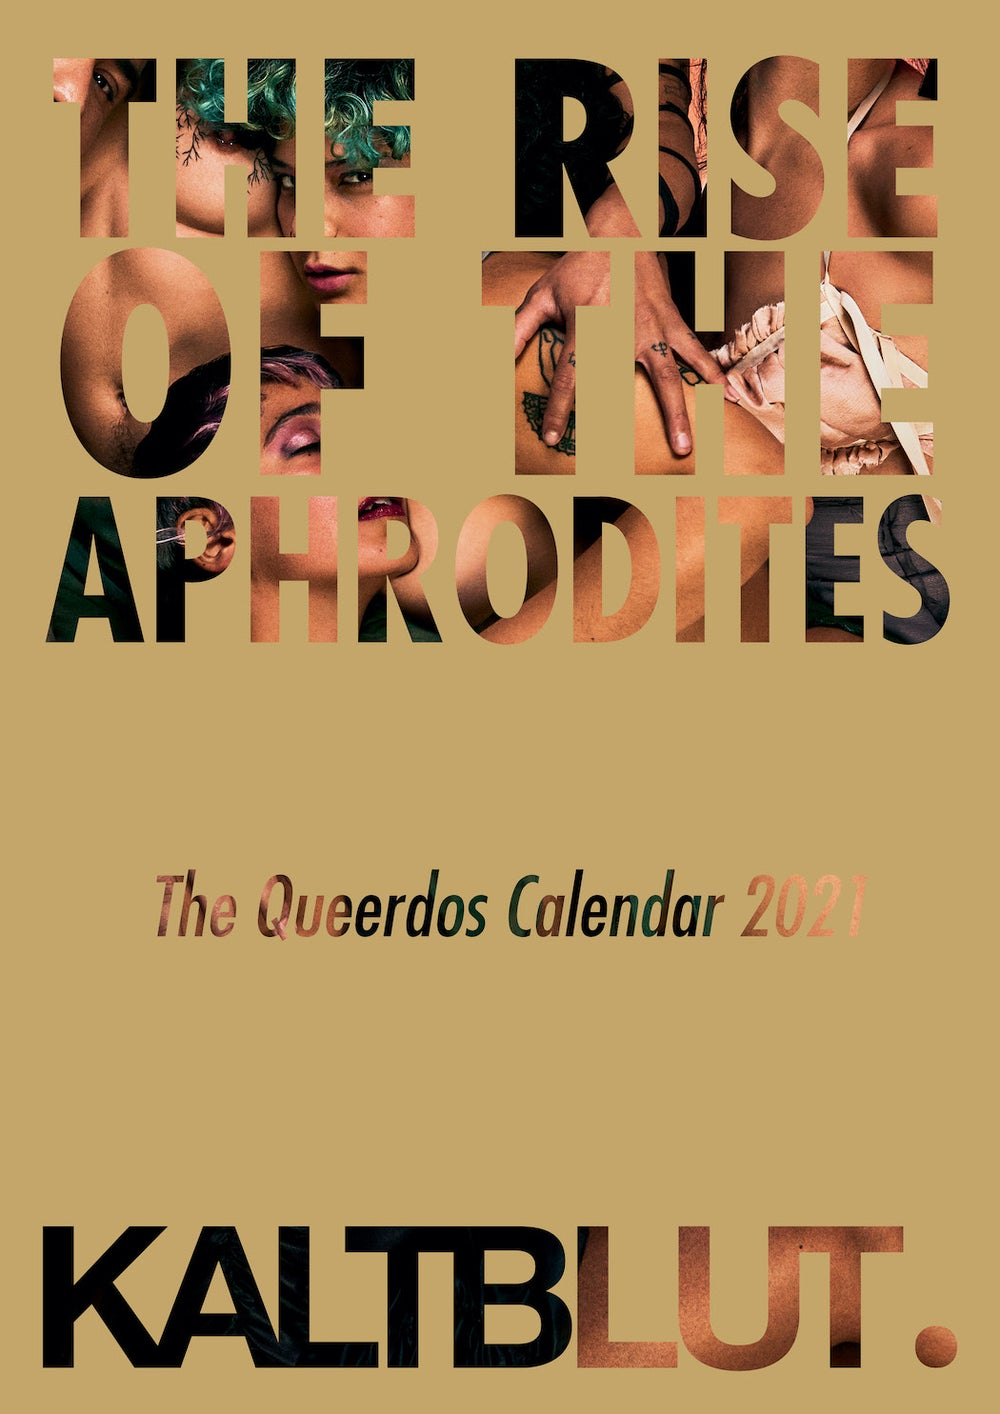 Image of The Rise Of The Aphrodites – The Queerdos Calendar 2021